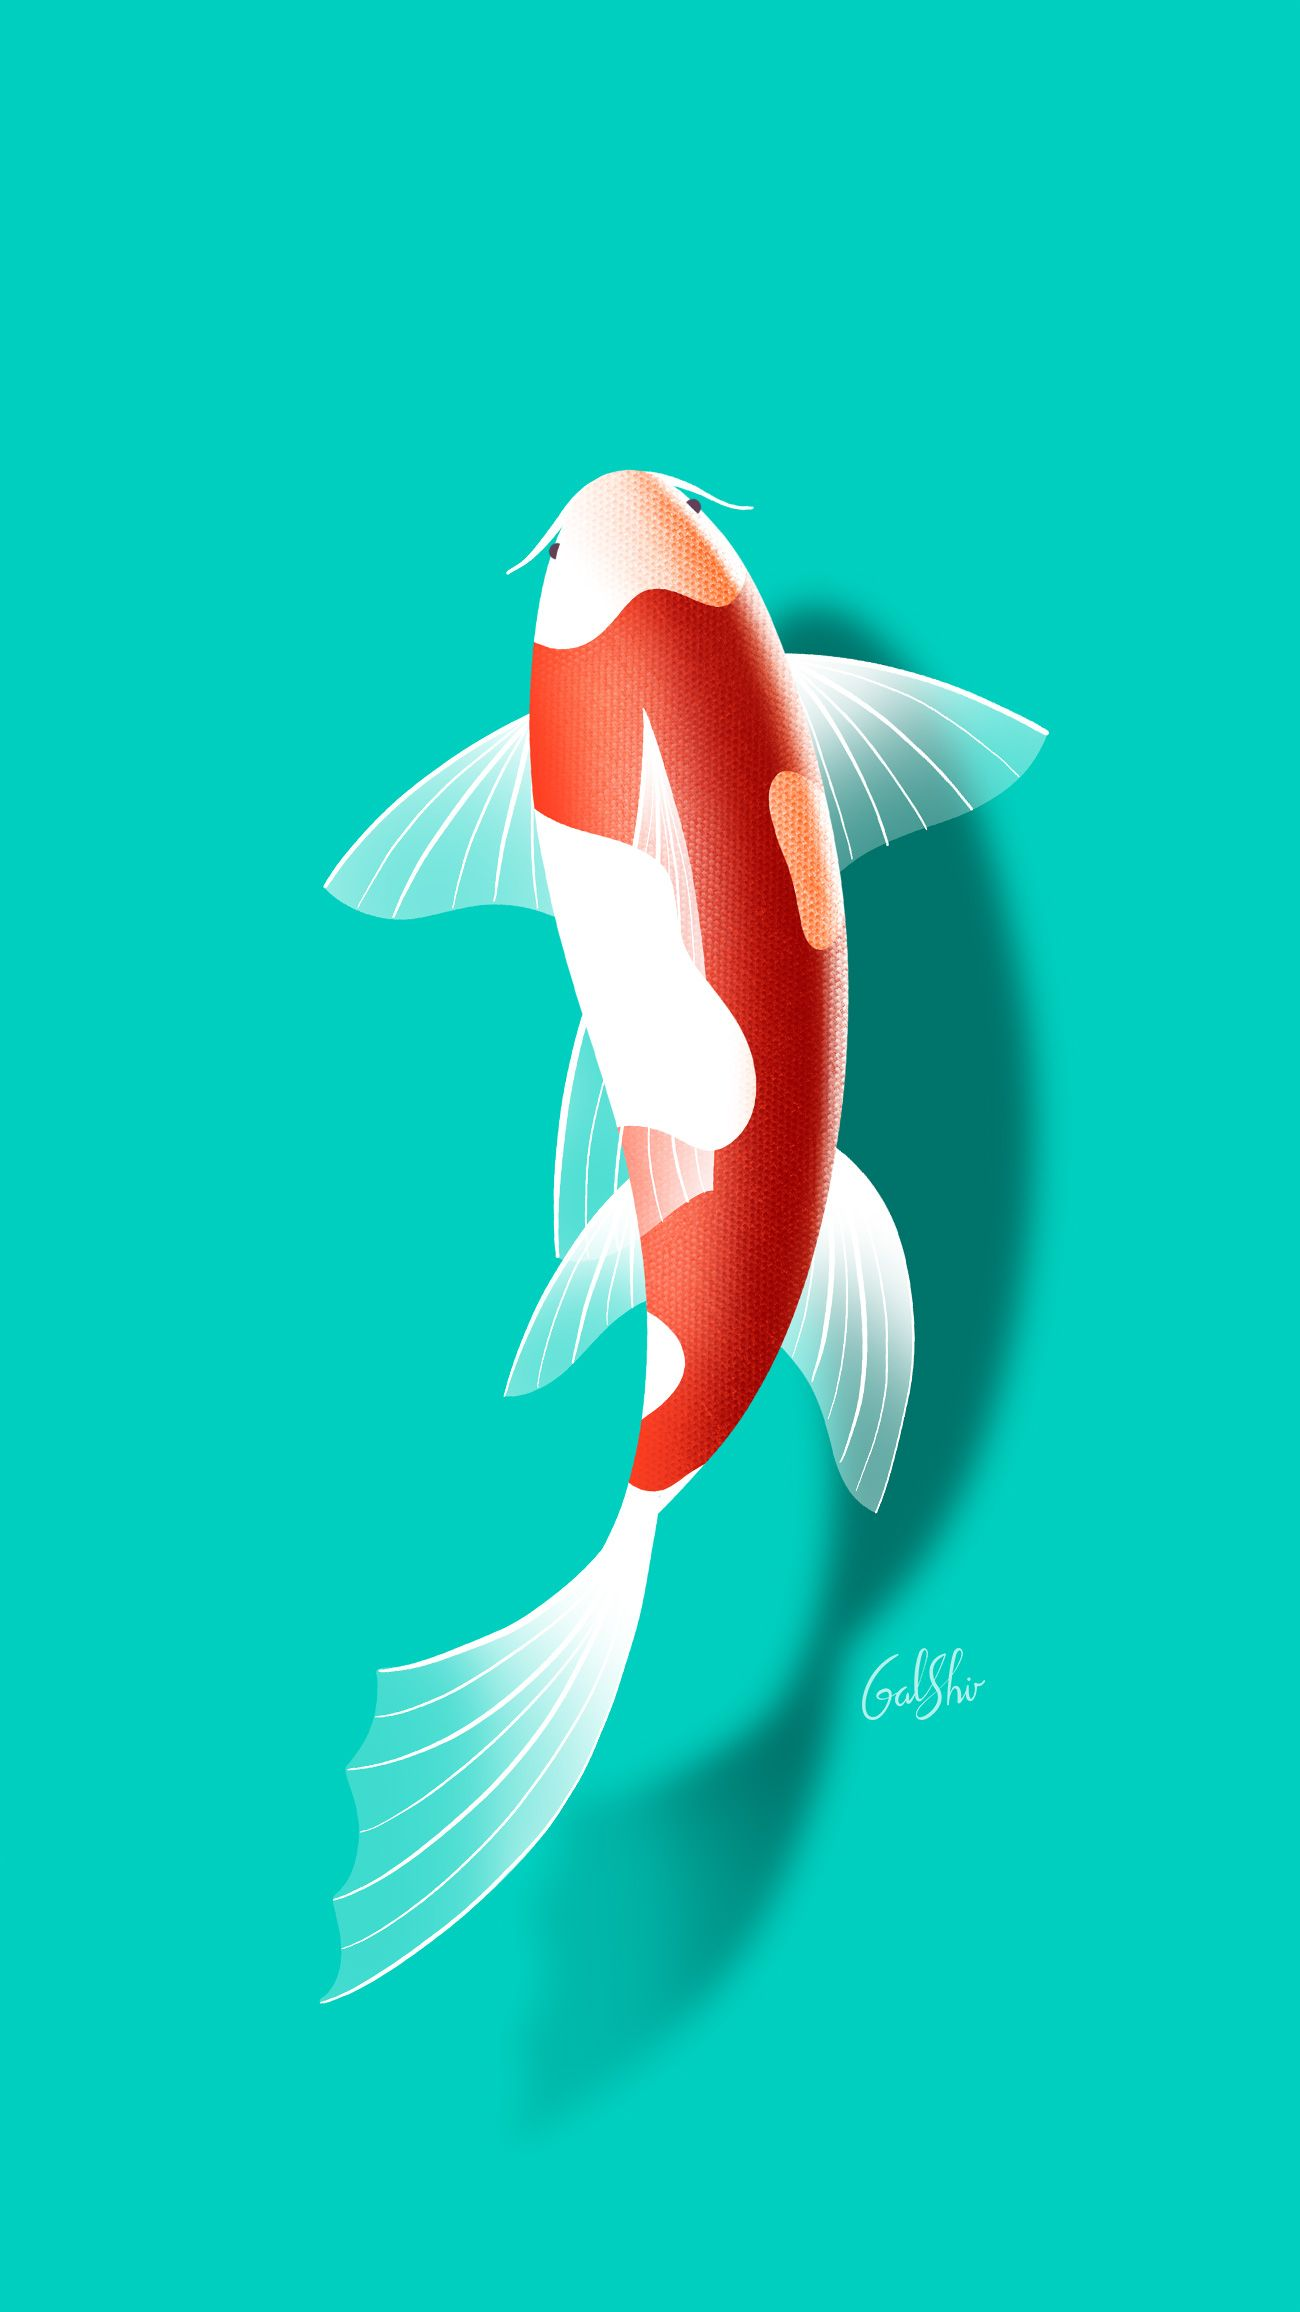 Pin By Emilia Medema On Wallpapers Iphone Wallpaper Fish Wallpaper Wallpaper